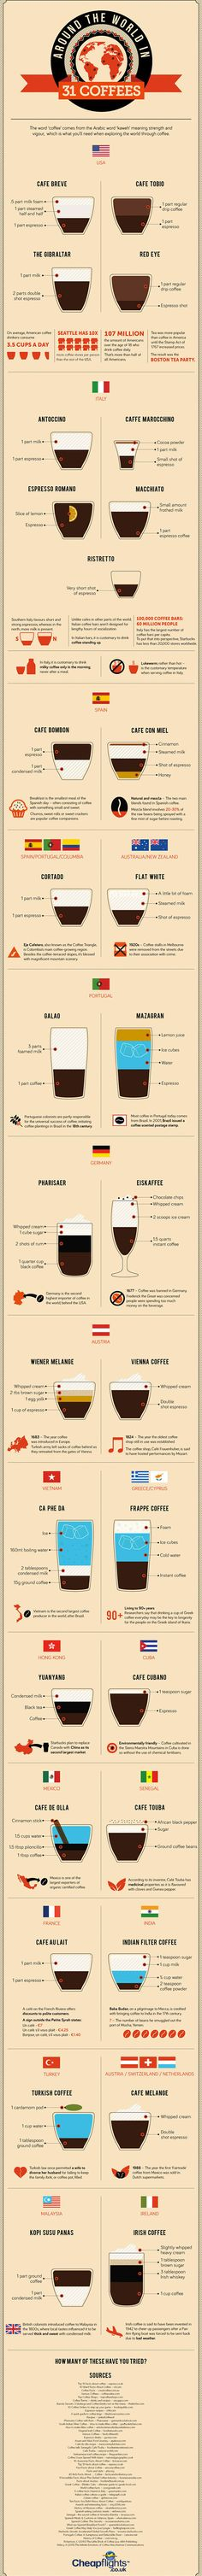 Chances are you order a boring, plain coffee or latte in the morning. Maybe you switch it up with a Red Eye every once in a while.  But lots of countries have far more interesting and elaborate coffee cultures. A new infographic from Cheapflights (first posted on The Daily Mail) illustrates 31 ways to drink coffee in places around the world, be it with ice cream, an egg yolk, or a slice of lemon.